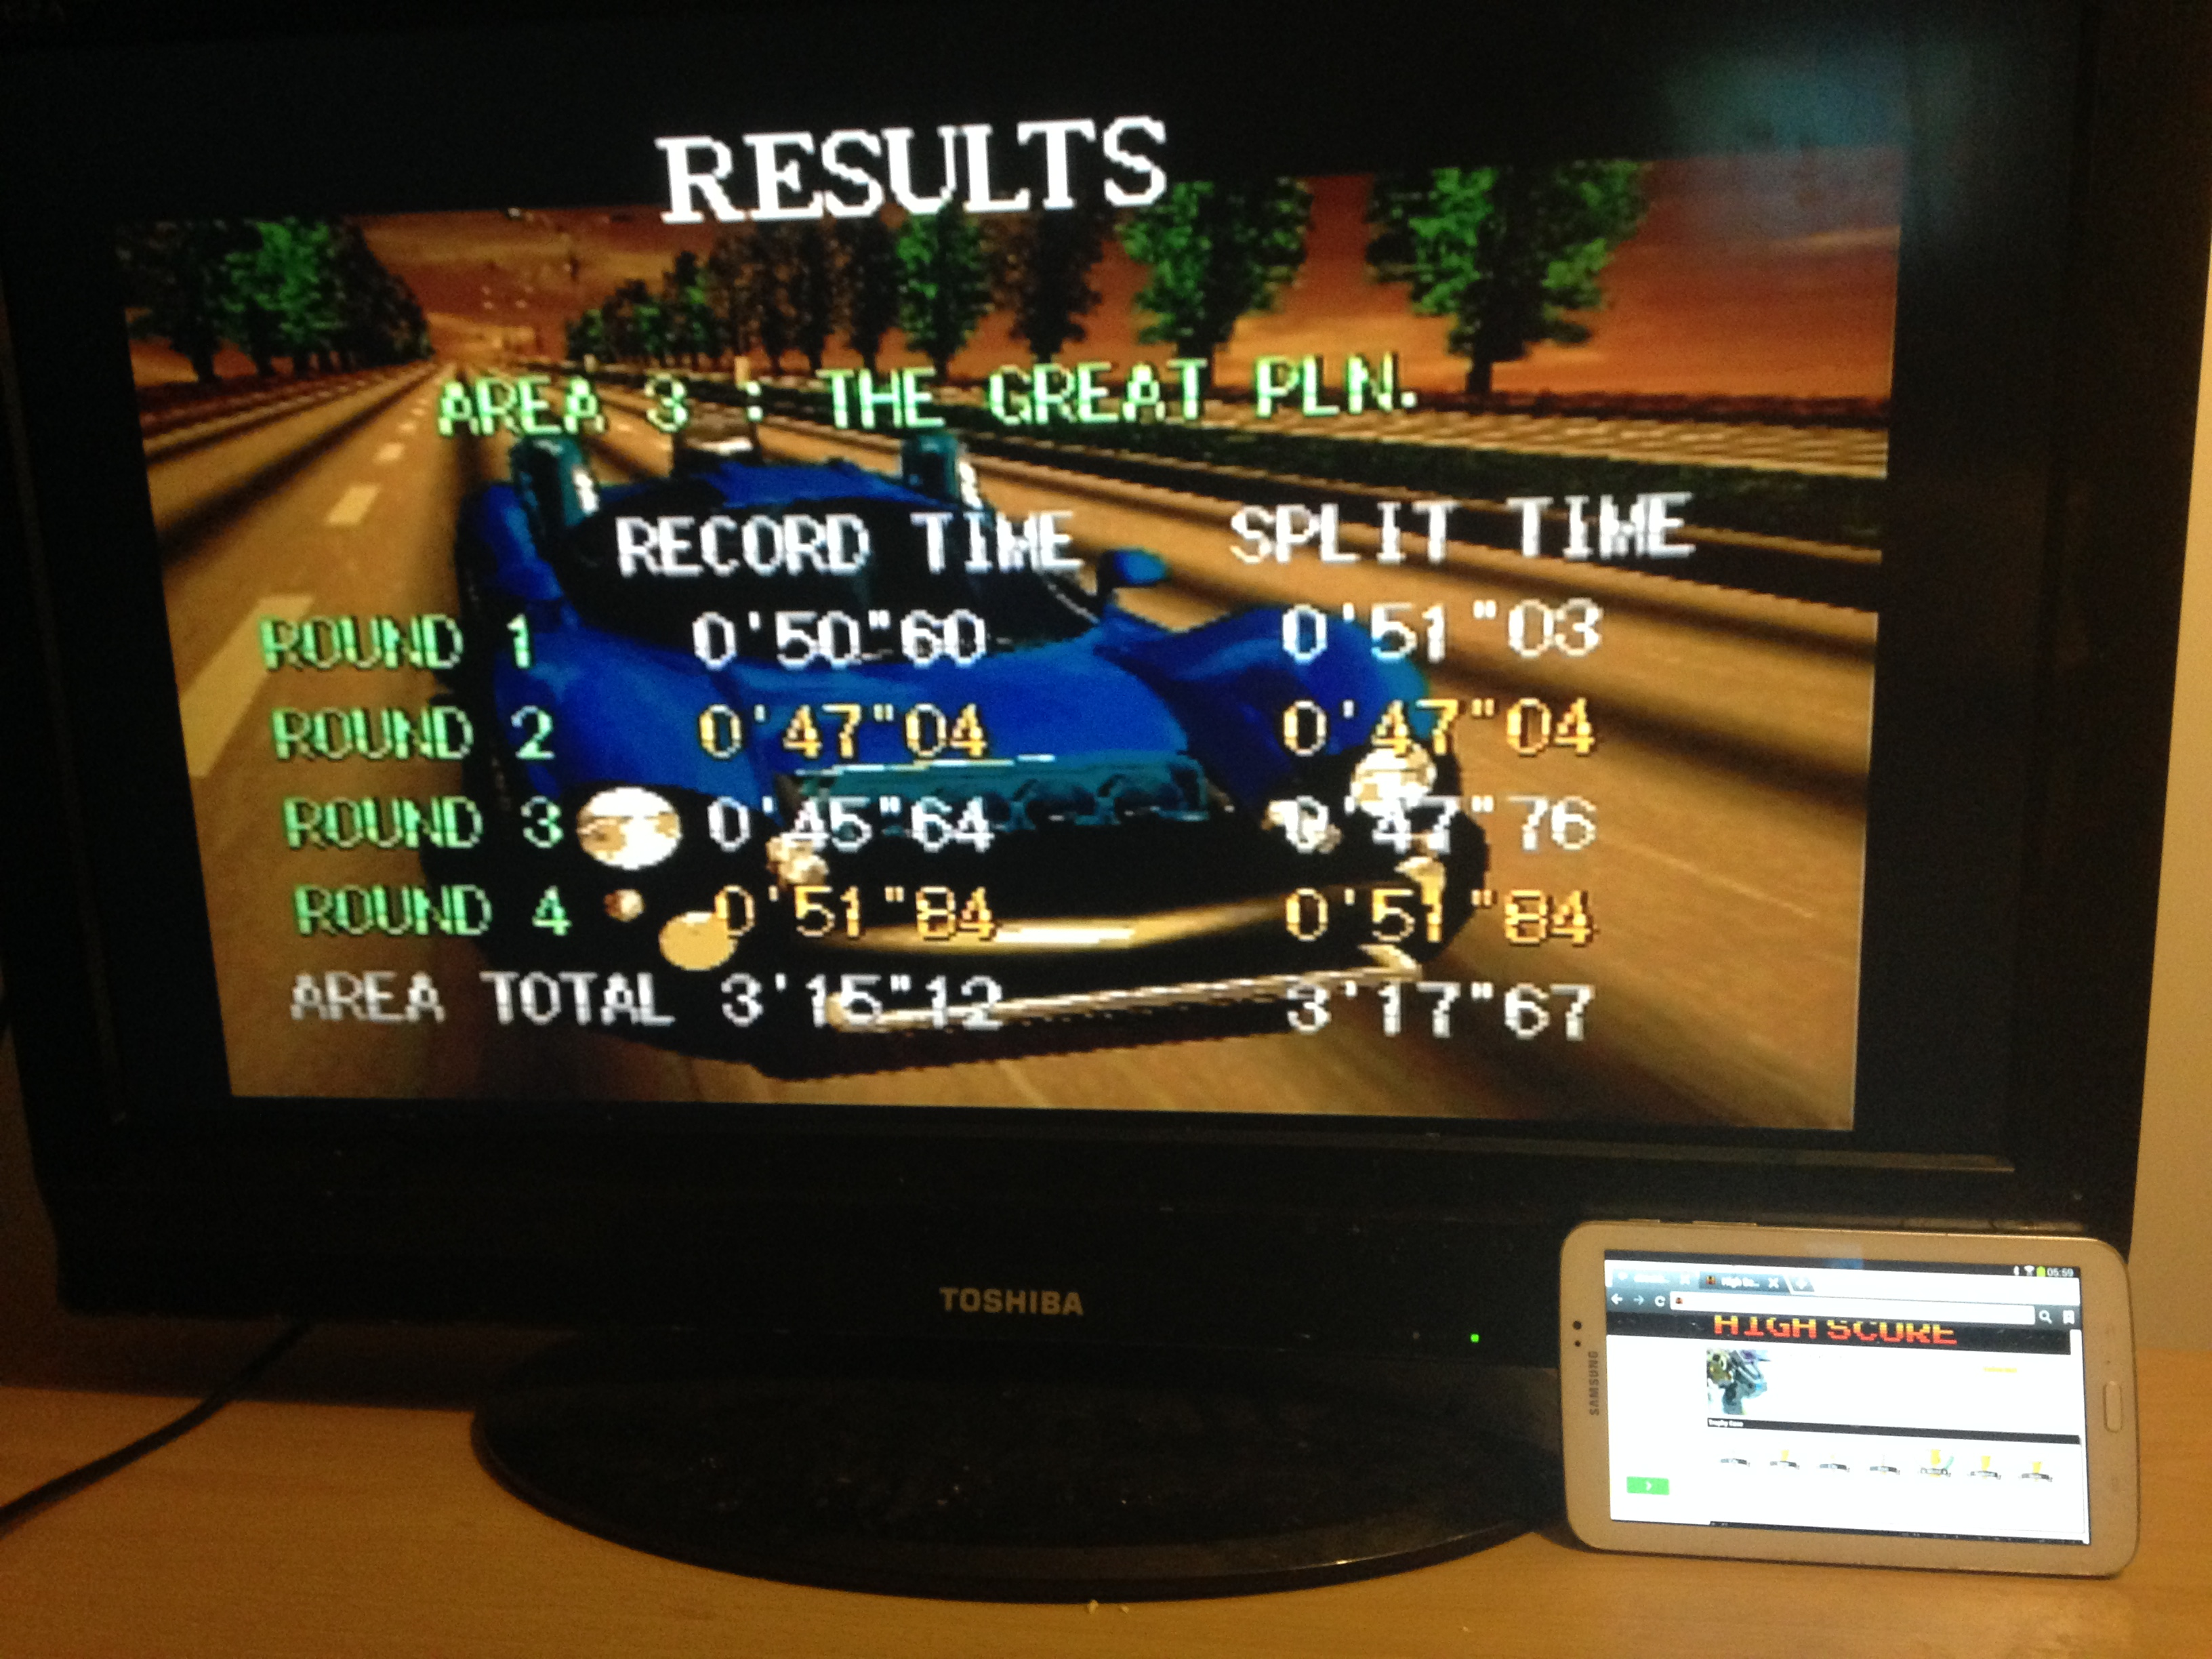 Gale Racer: Time Attack Area 3 time of 0:03:17.67